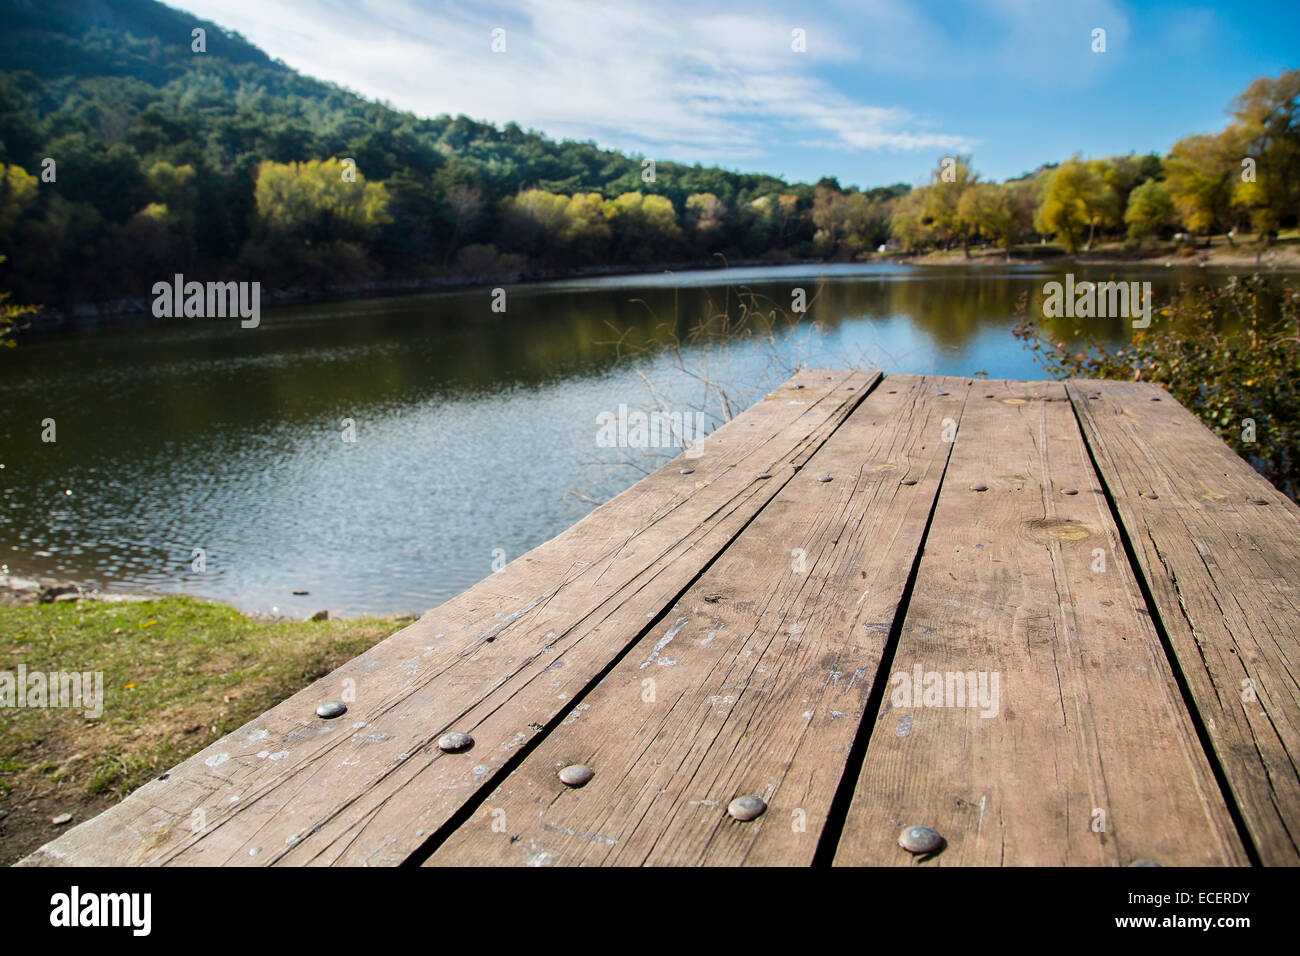 Perspective Of Wooden Picnic Table With Blur Landscape